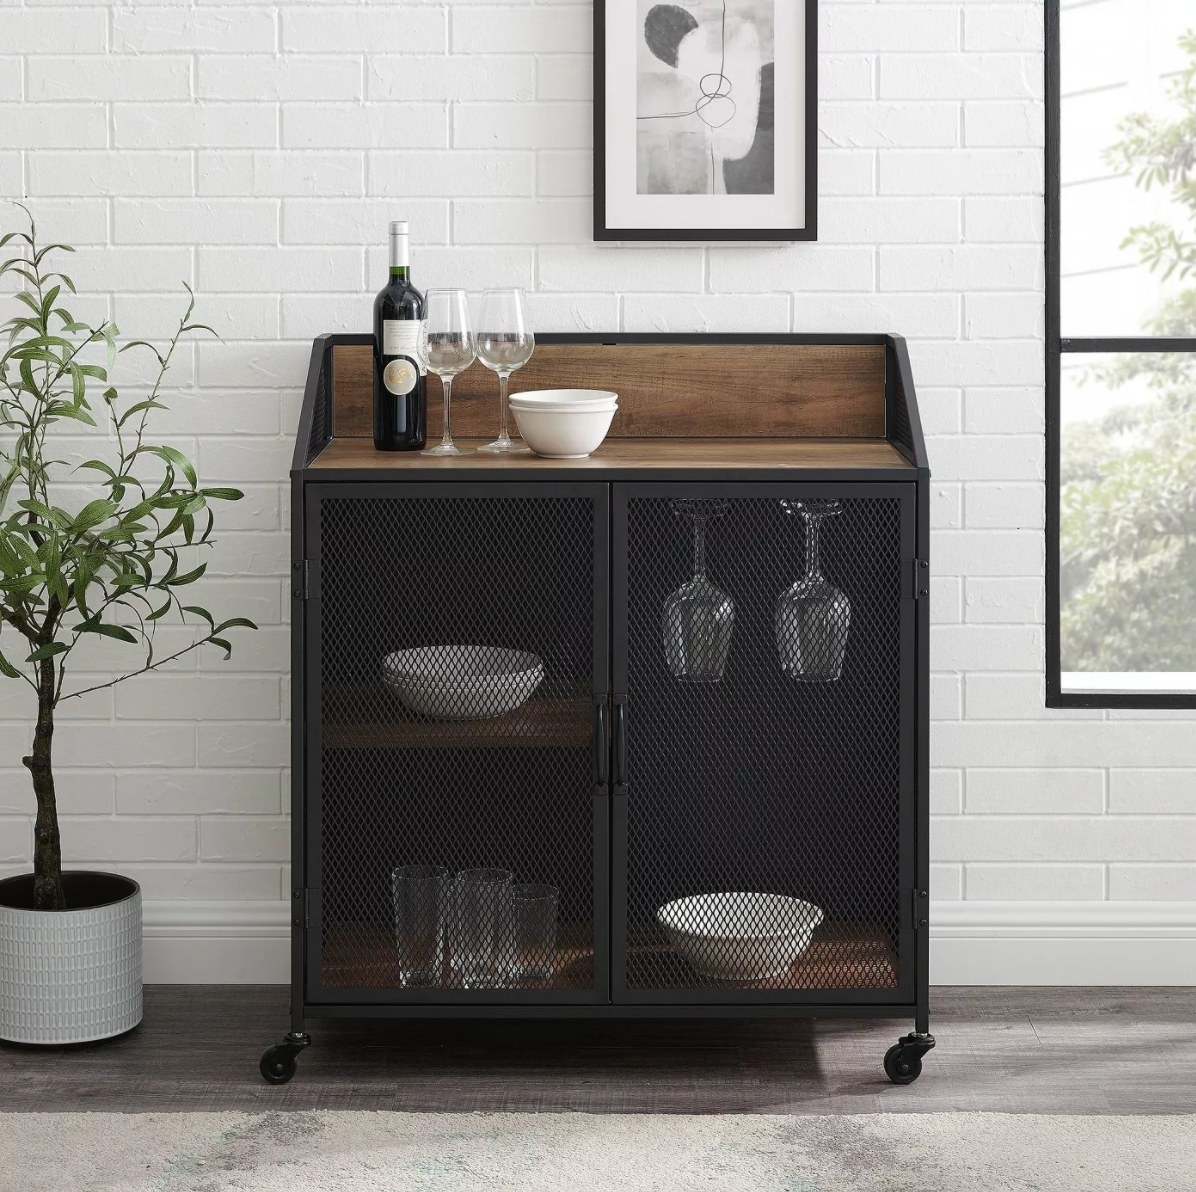 The industrial mesh cart in rustic oak holding wine glasses, a bottle of red, and white bowls